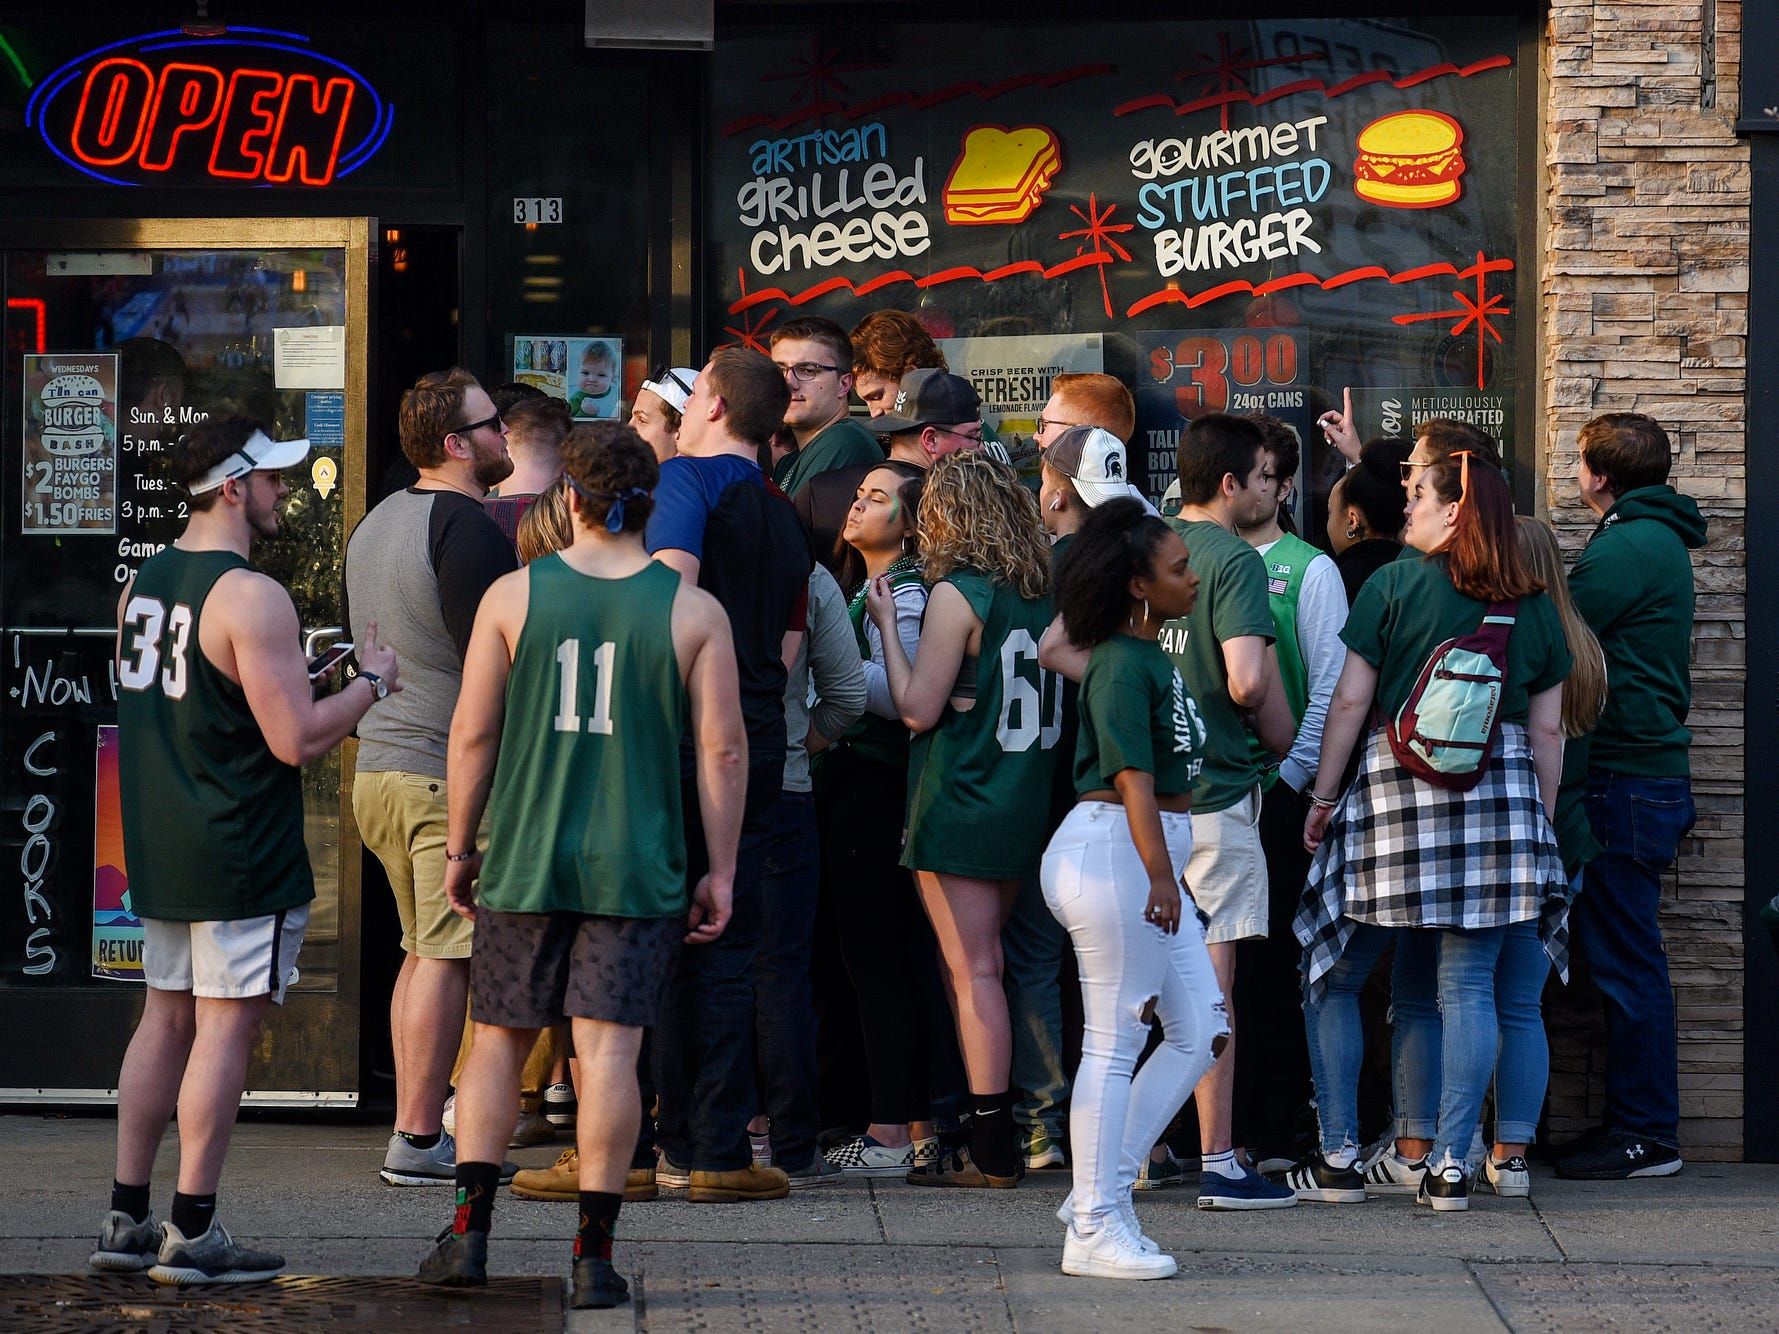 A crowd waits to get inside the Tin Can bar and grill before the Michigan State Spartans' Final Four game against Texas Tech on Saturday, April 6, 2019, in downtown East Lansing.